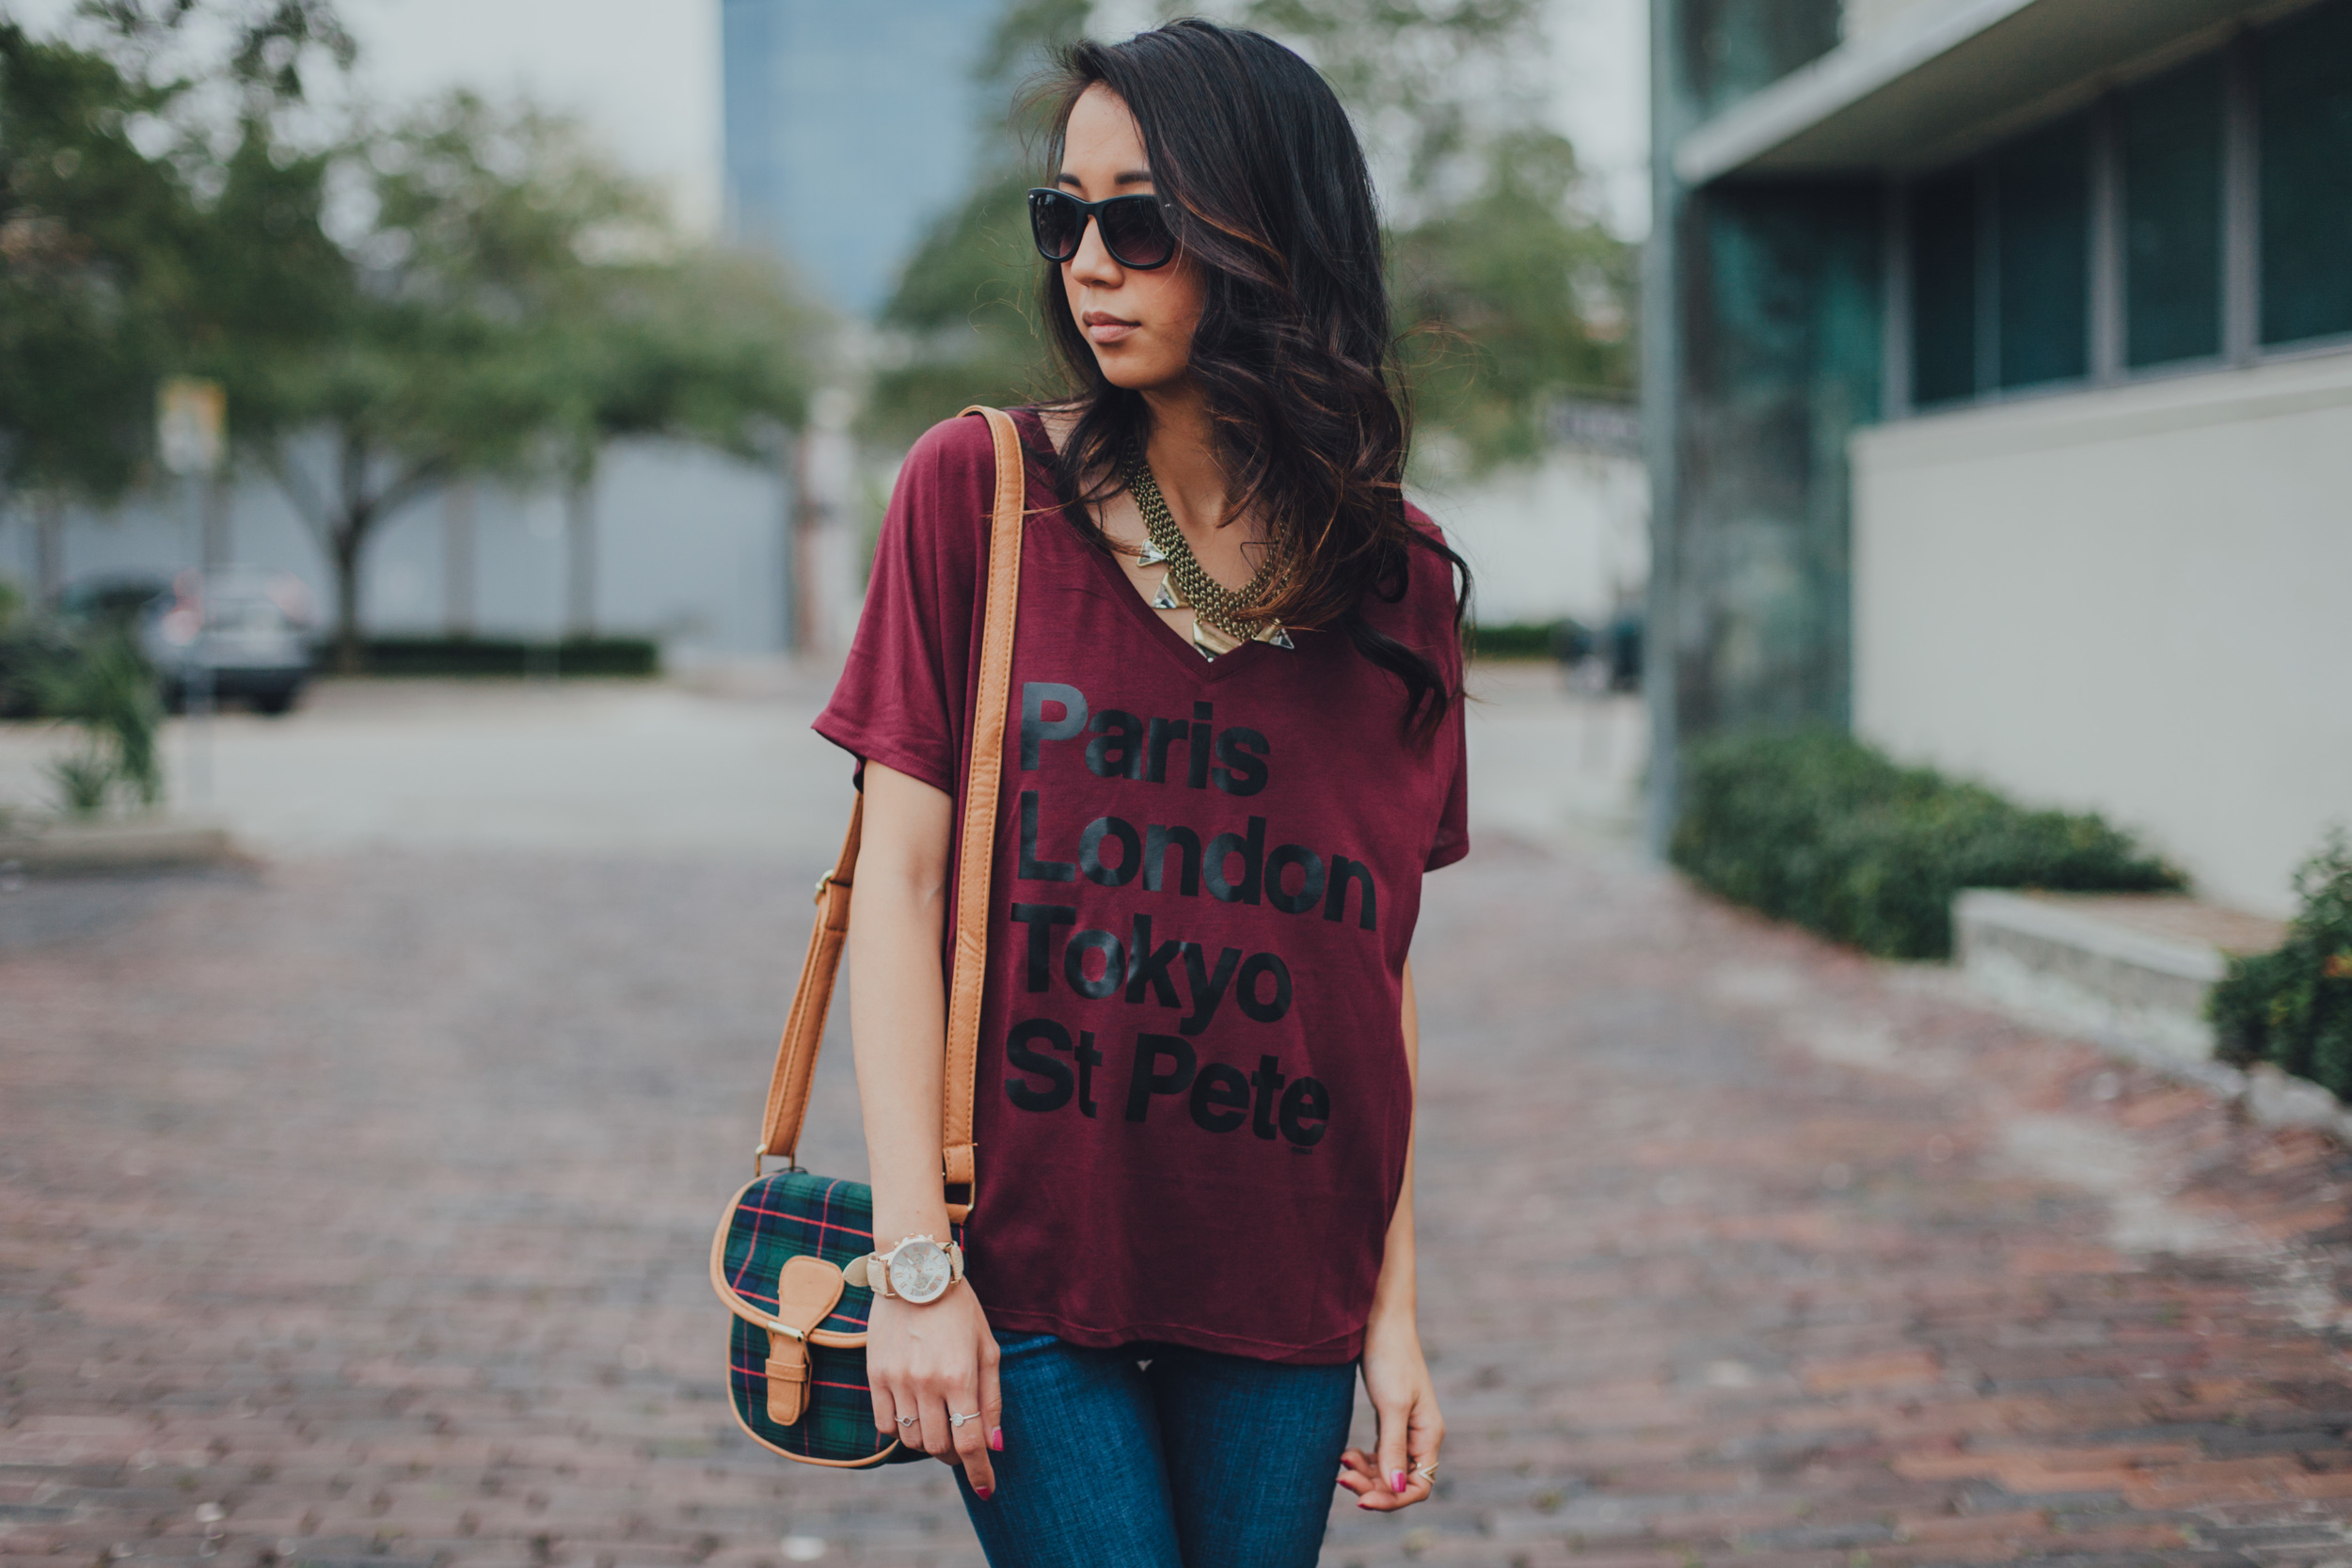 This Jenn Girl - MisRED Outfitters 4